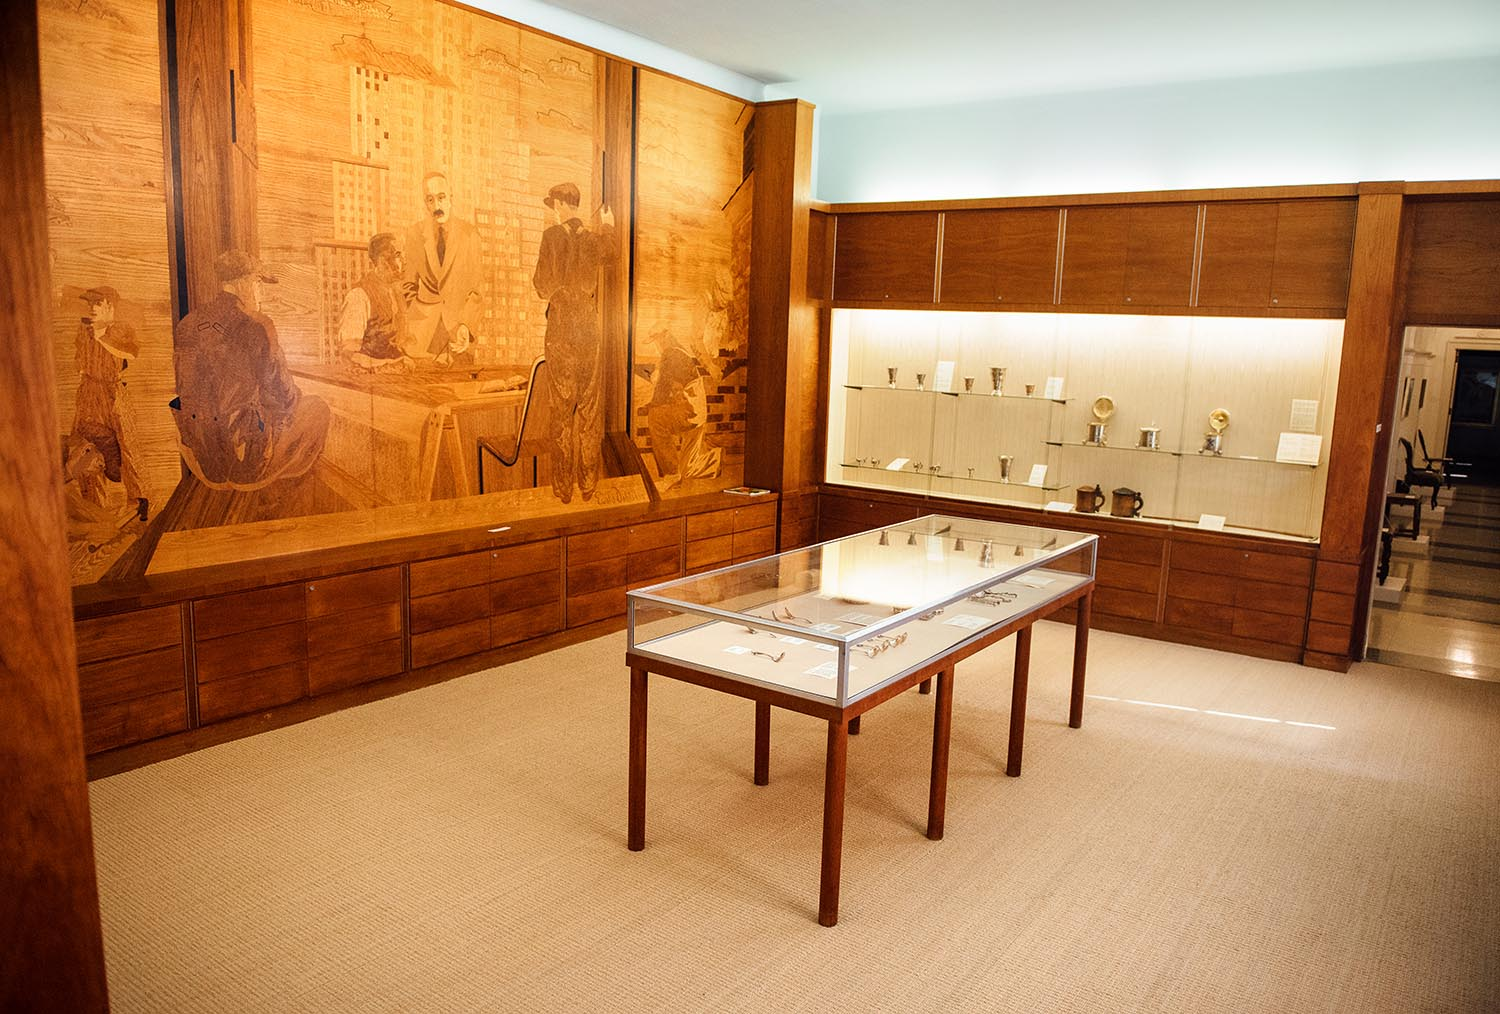 American Swedish Historical Museum - Chicago Room